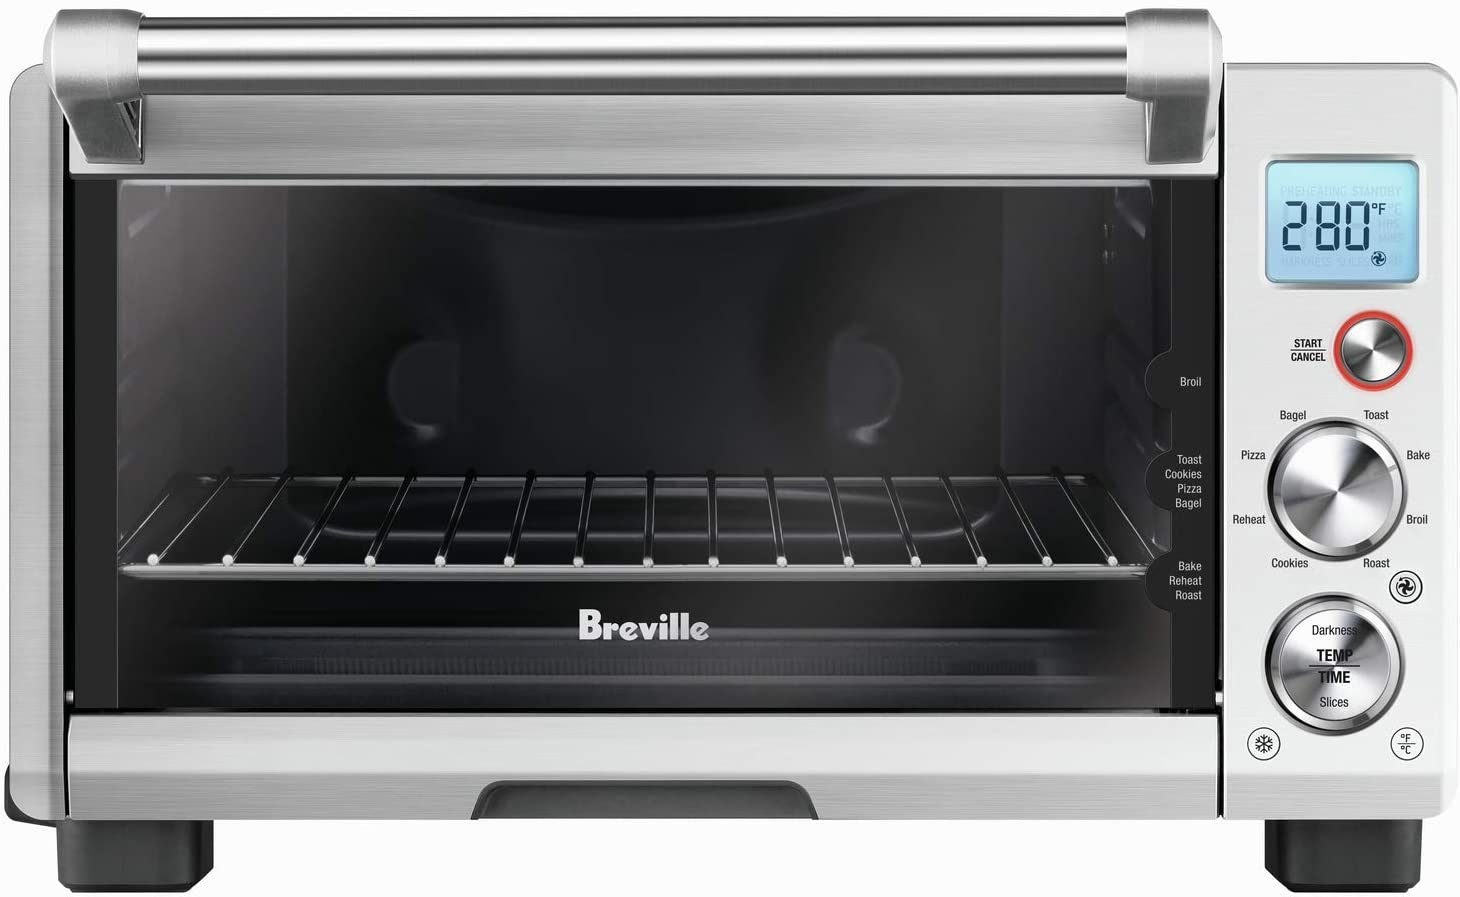 Breville BOV670BSS Smart Oven Compact Convection, Brushed Stainless Steel (Renewed)